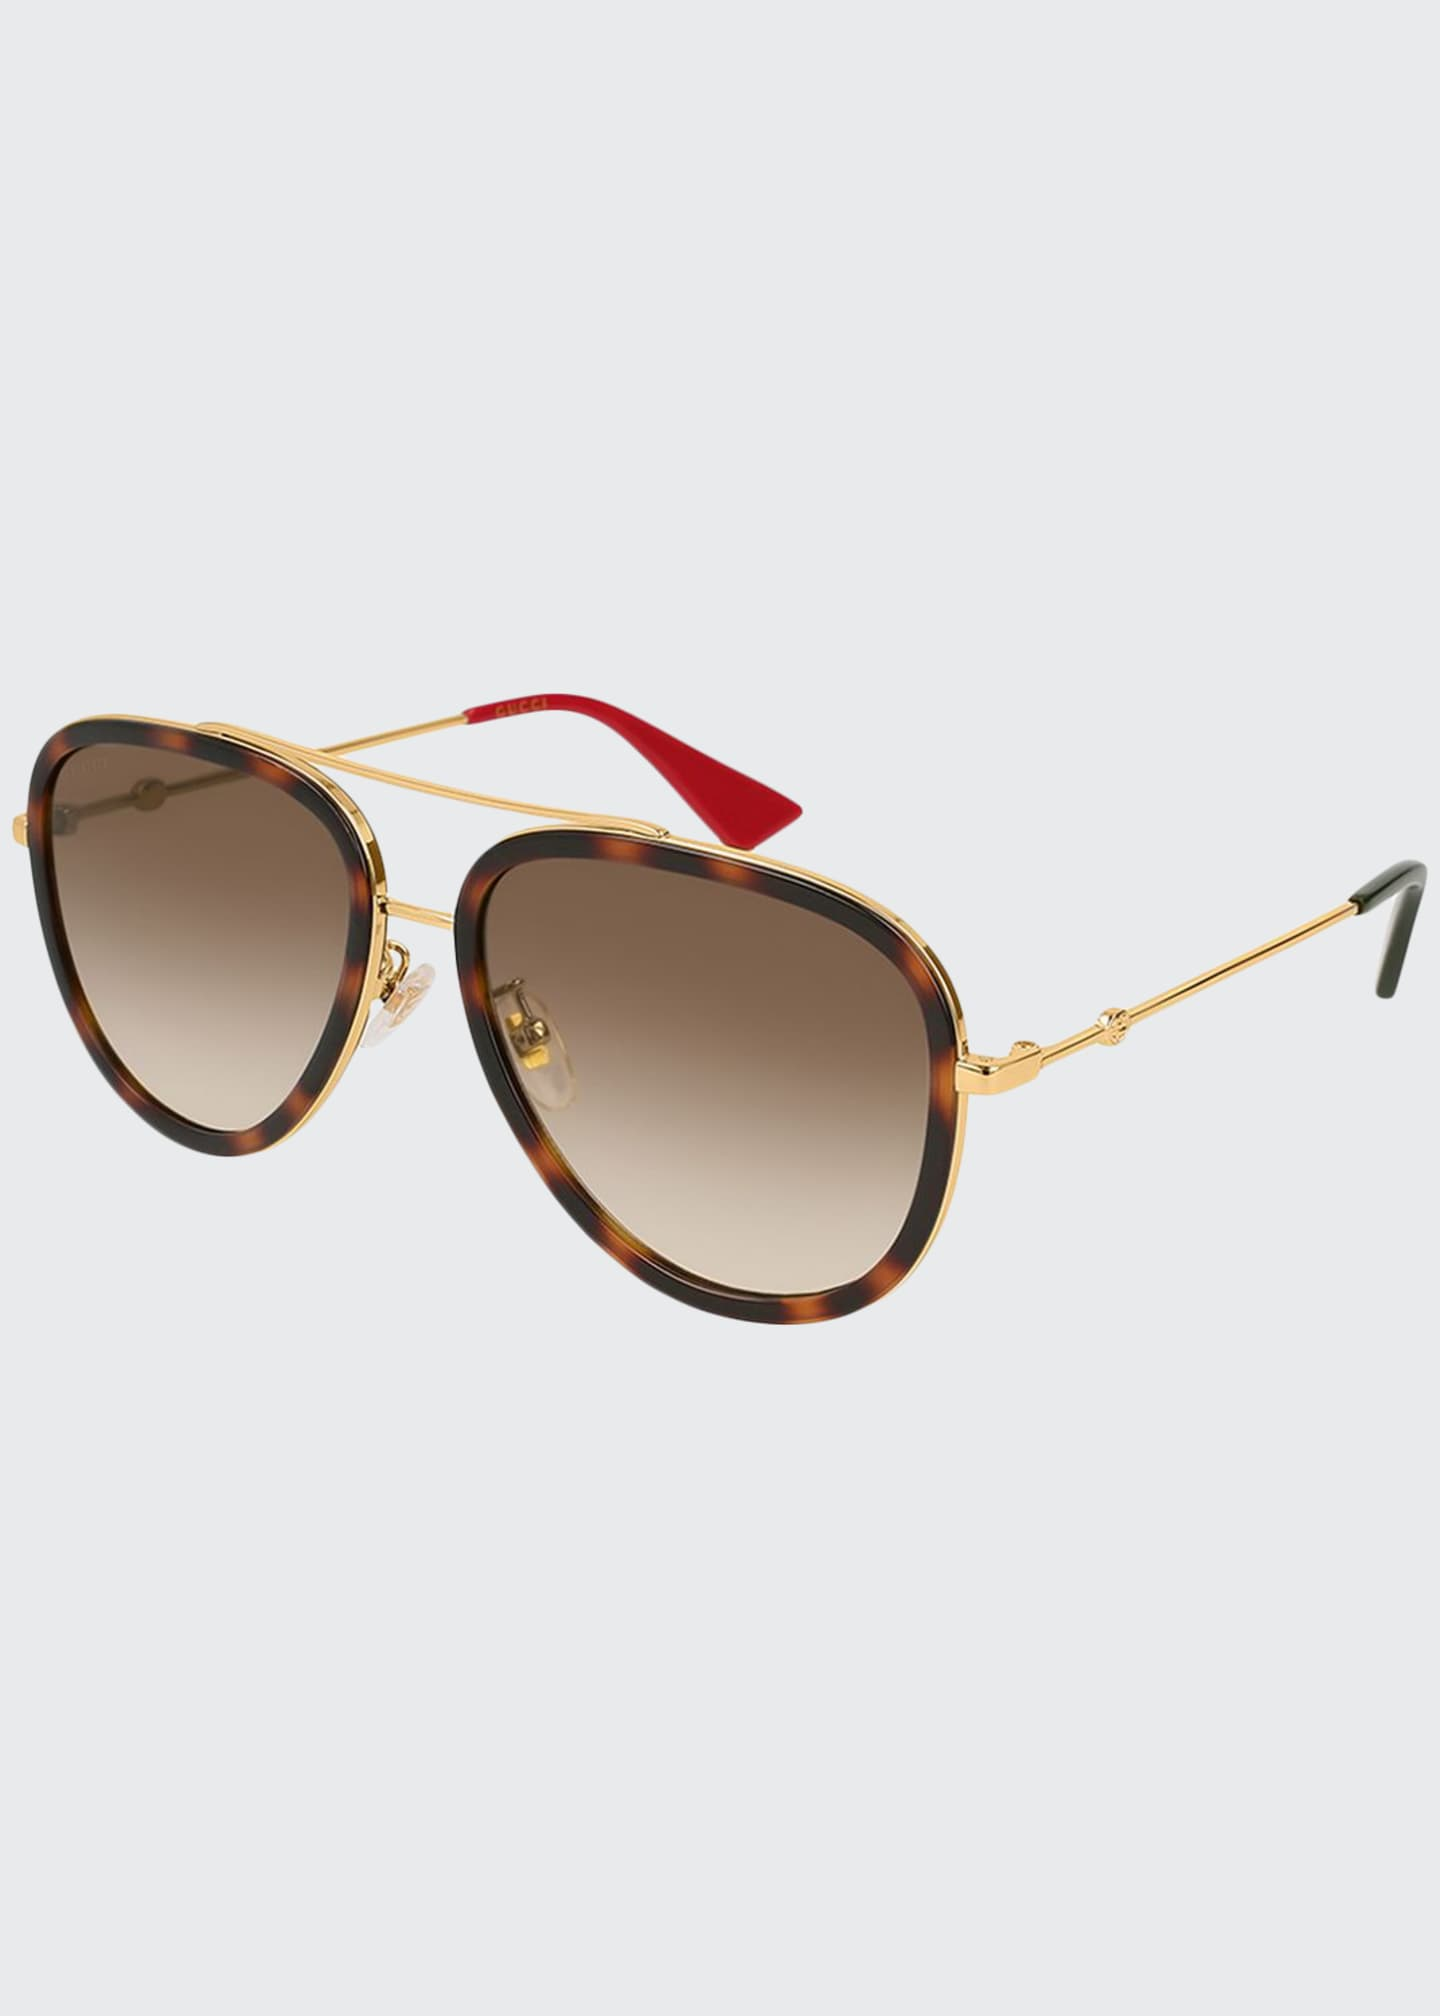 Gucci Metal Gradient Aviator Sunglasses